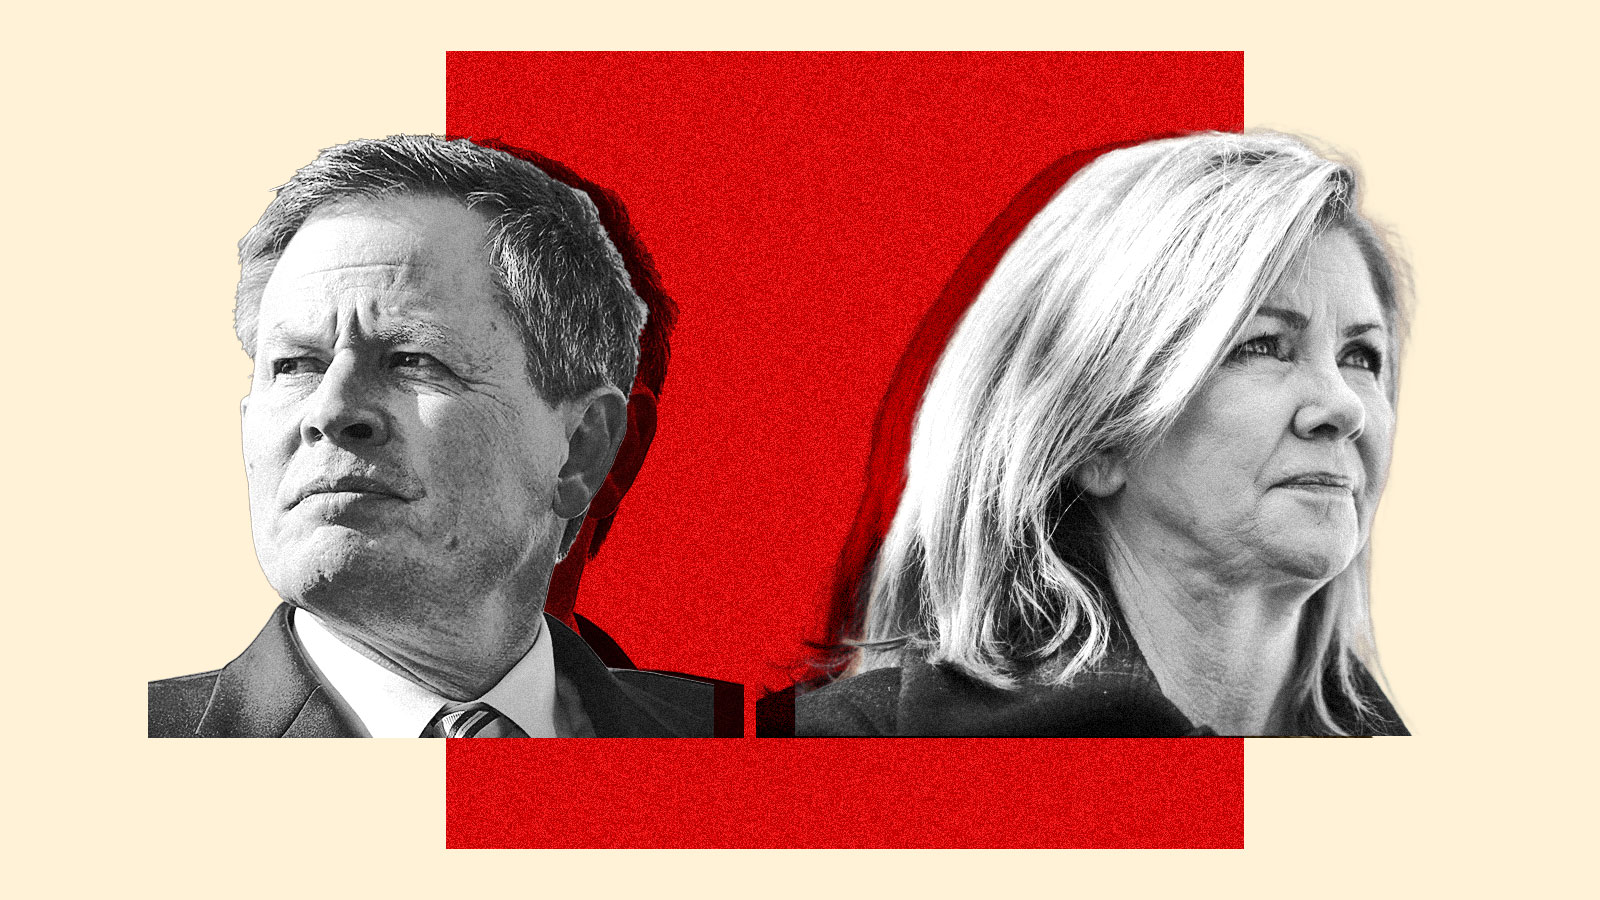 A photo collage of Steve Daines and Marsha Blackburn with a red square behind them.